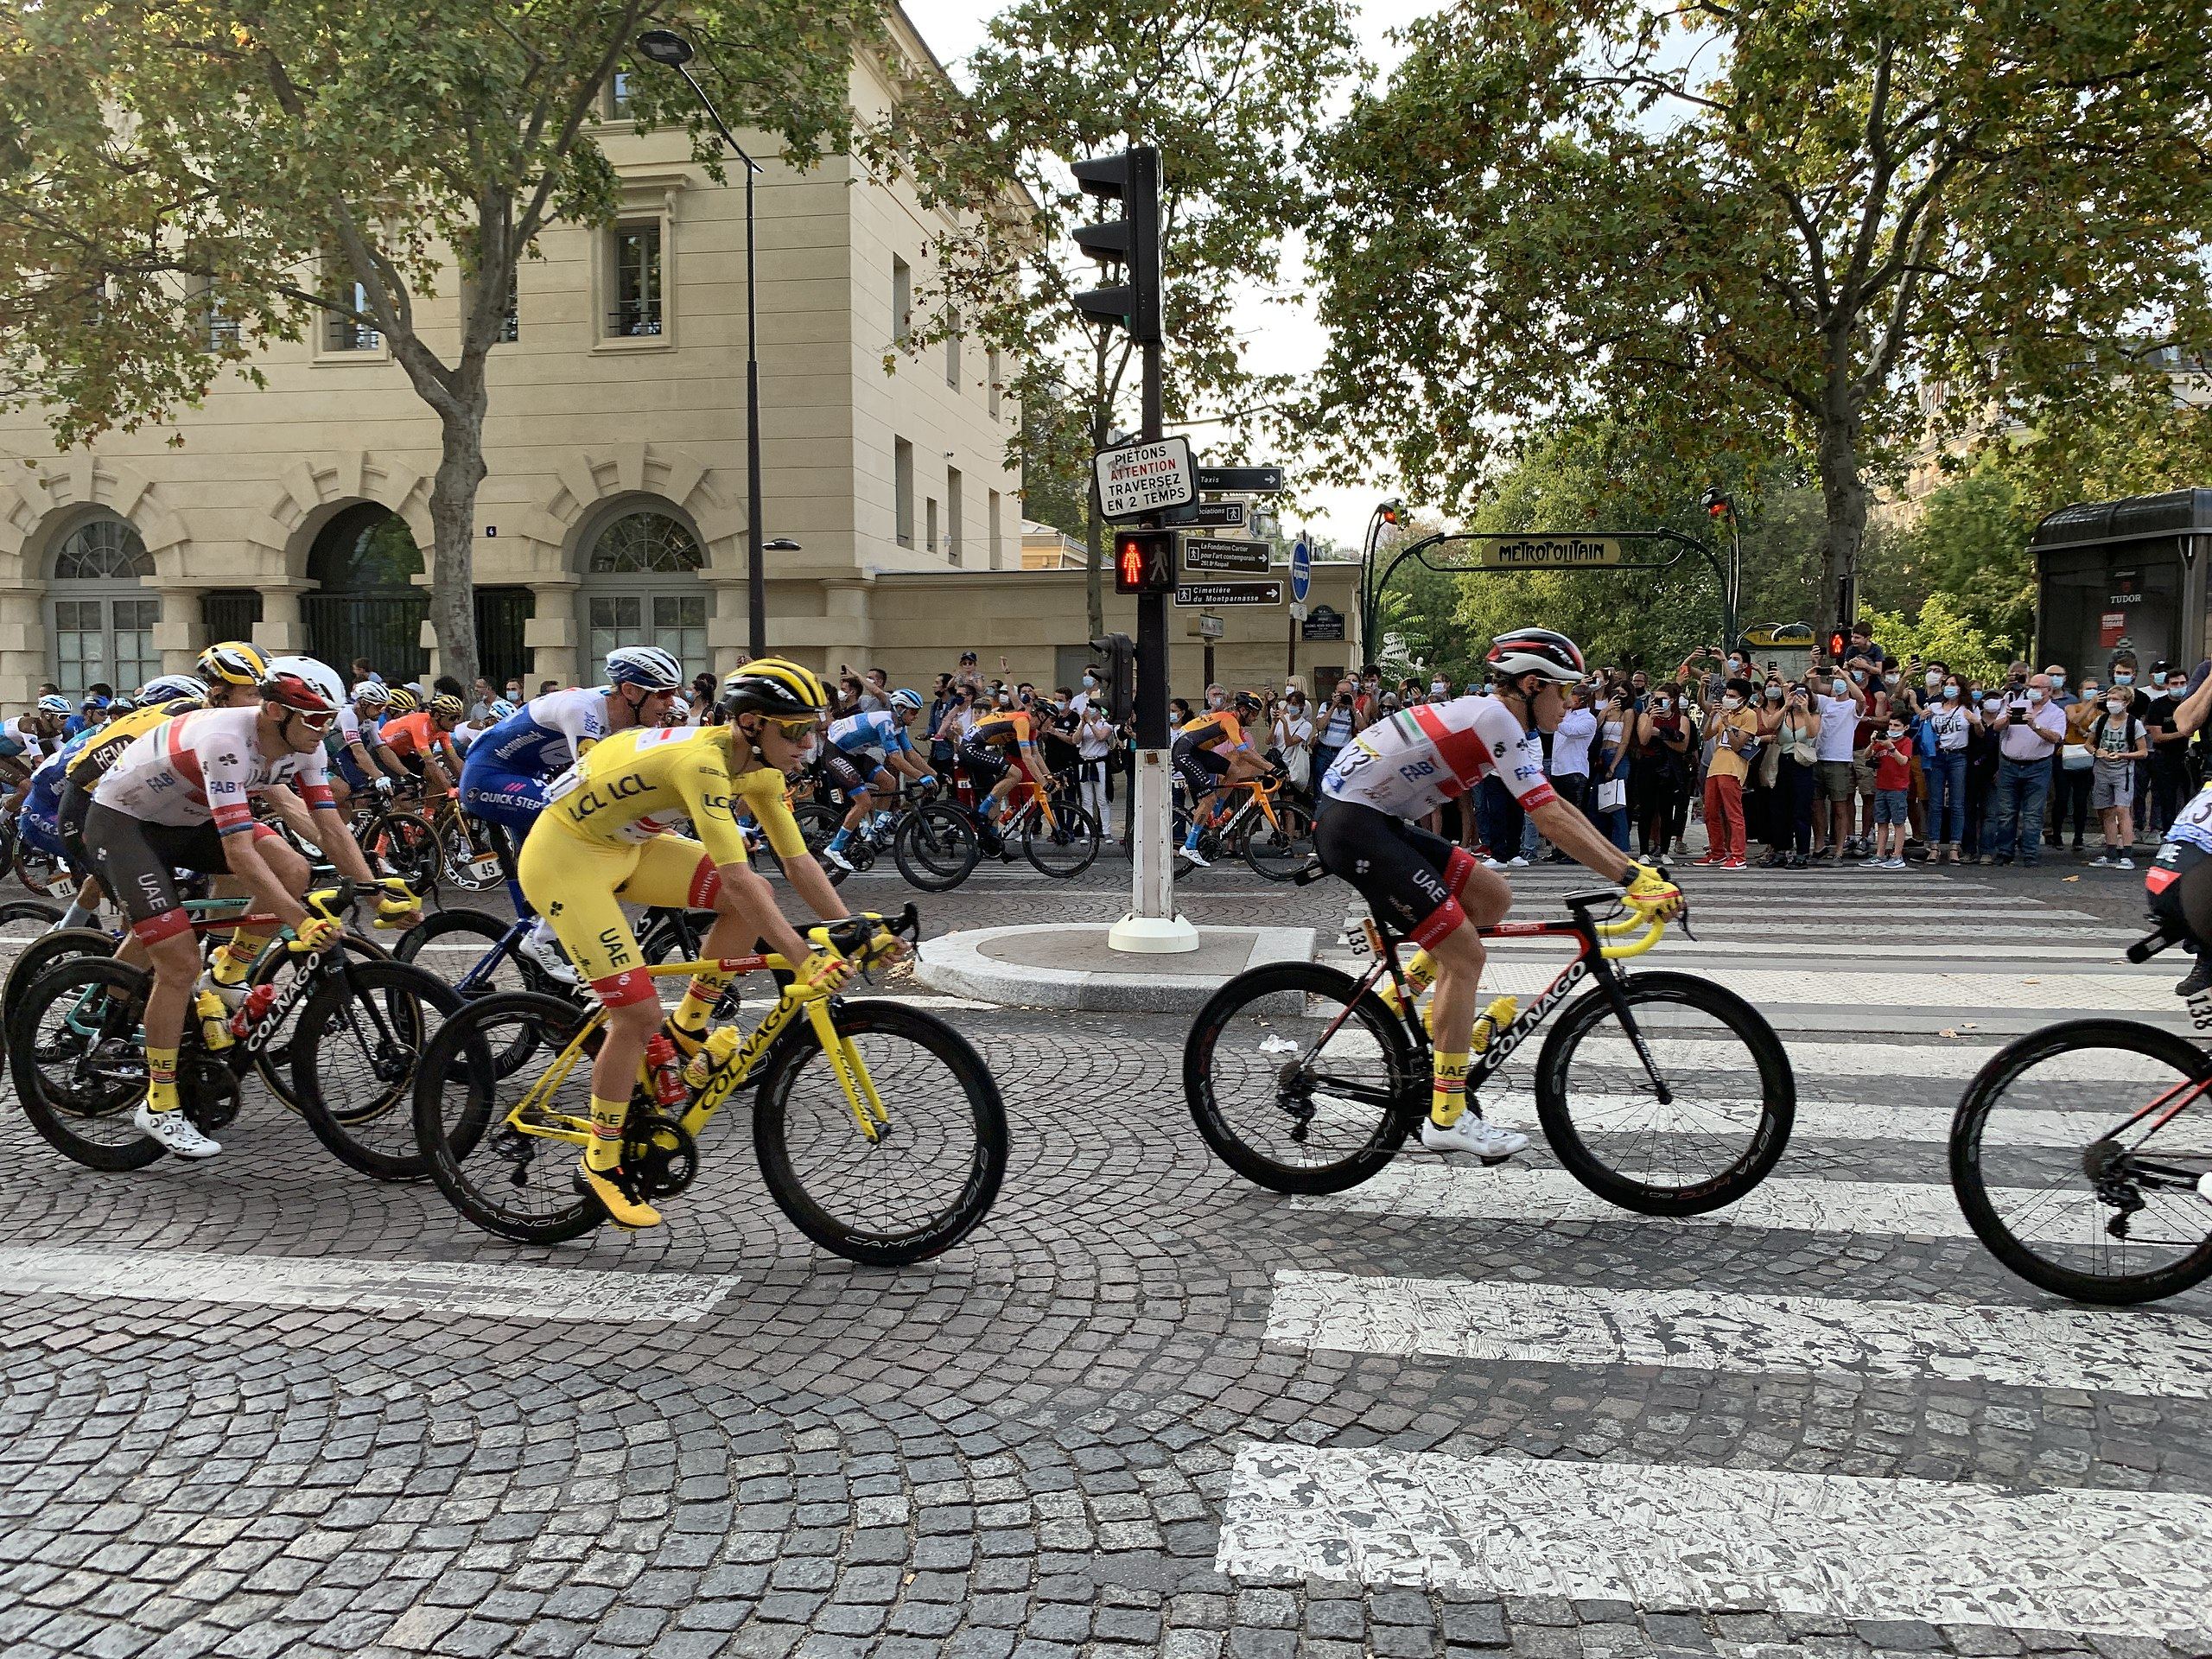 21e étape du Tour de France 2020, avenue du Colonel Henry Rol Tanguy, Paris. Tadej Pogačar in yellow jersey and on a yellow bike, 2020-09-20 in France. CC BY-SA 4.0